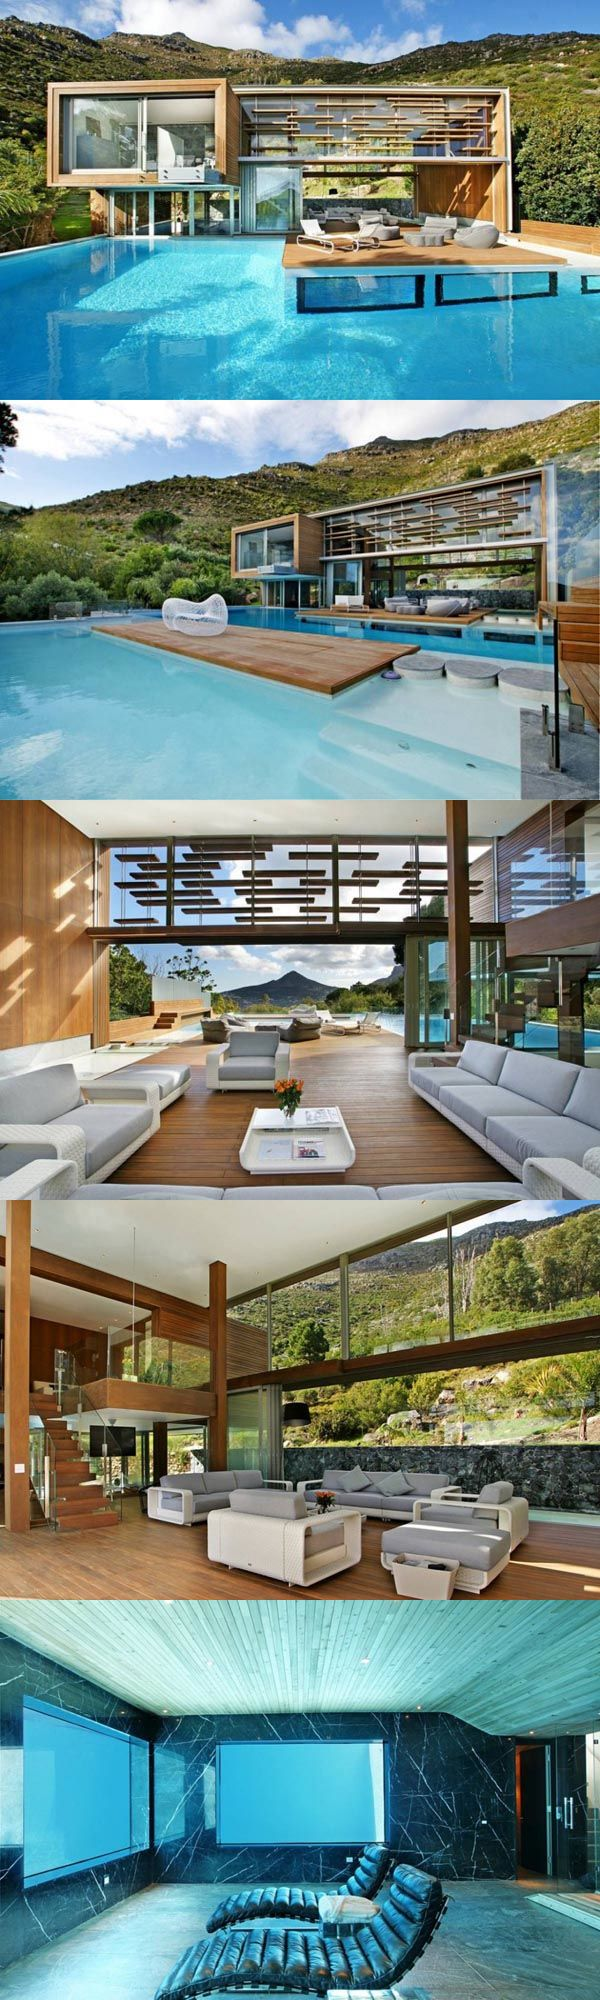 ☮ Modern Architecture Luxurious Architecture. The architects of Metropolis Design created the relaxing Spa House located in Cape Town, South Africa. Varandas Mezaninos e Escadas com Soluções Modernas e de Segurança em Vãos de Escada e Varandas... http://www.corrimao-inox.com http://www.facebook.com/corrimaoinoxsp #mezanino #escadas #sobrados #pédireitoduplo #Corrimãoinox #mármore #granito #decor #saladeestar #home #arquitetura #casamoderna